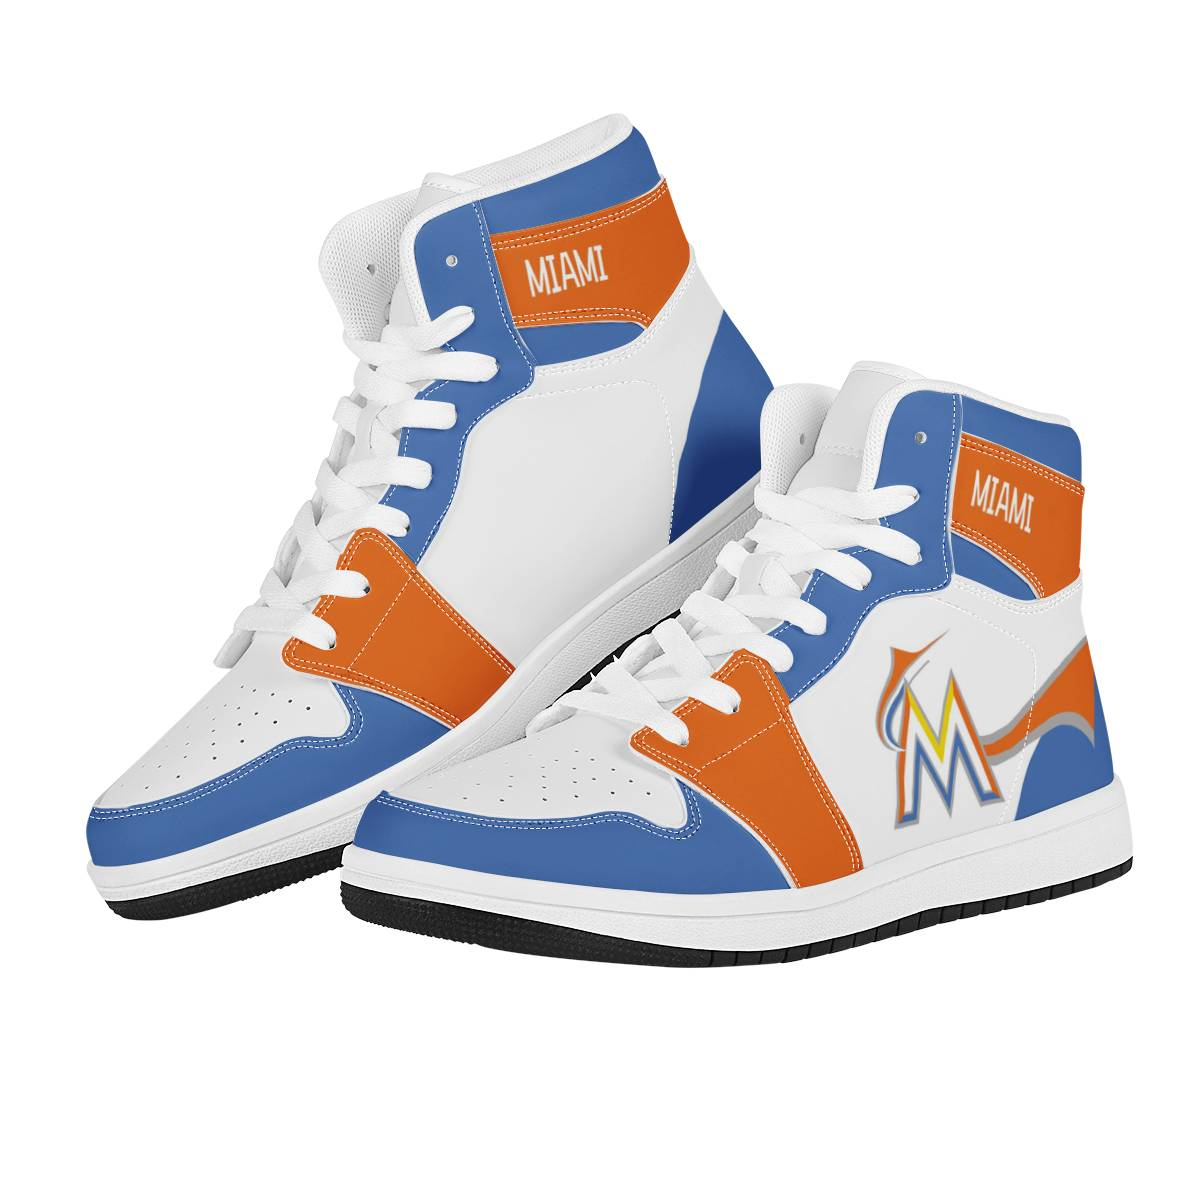 Women's Miami Marlins High Top Leather AJ1 Sneakers 002